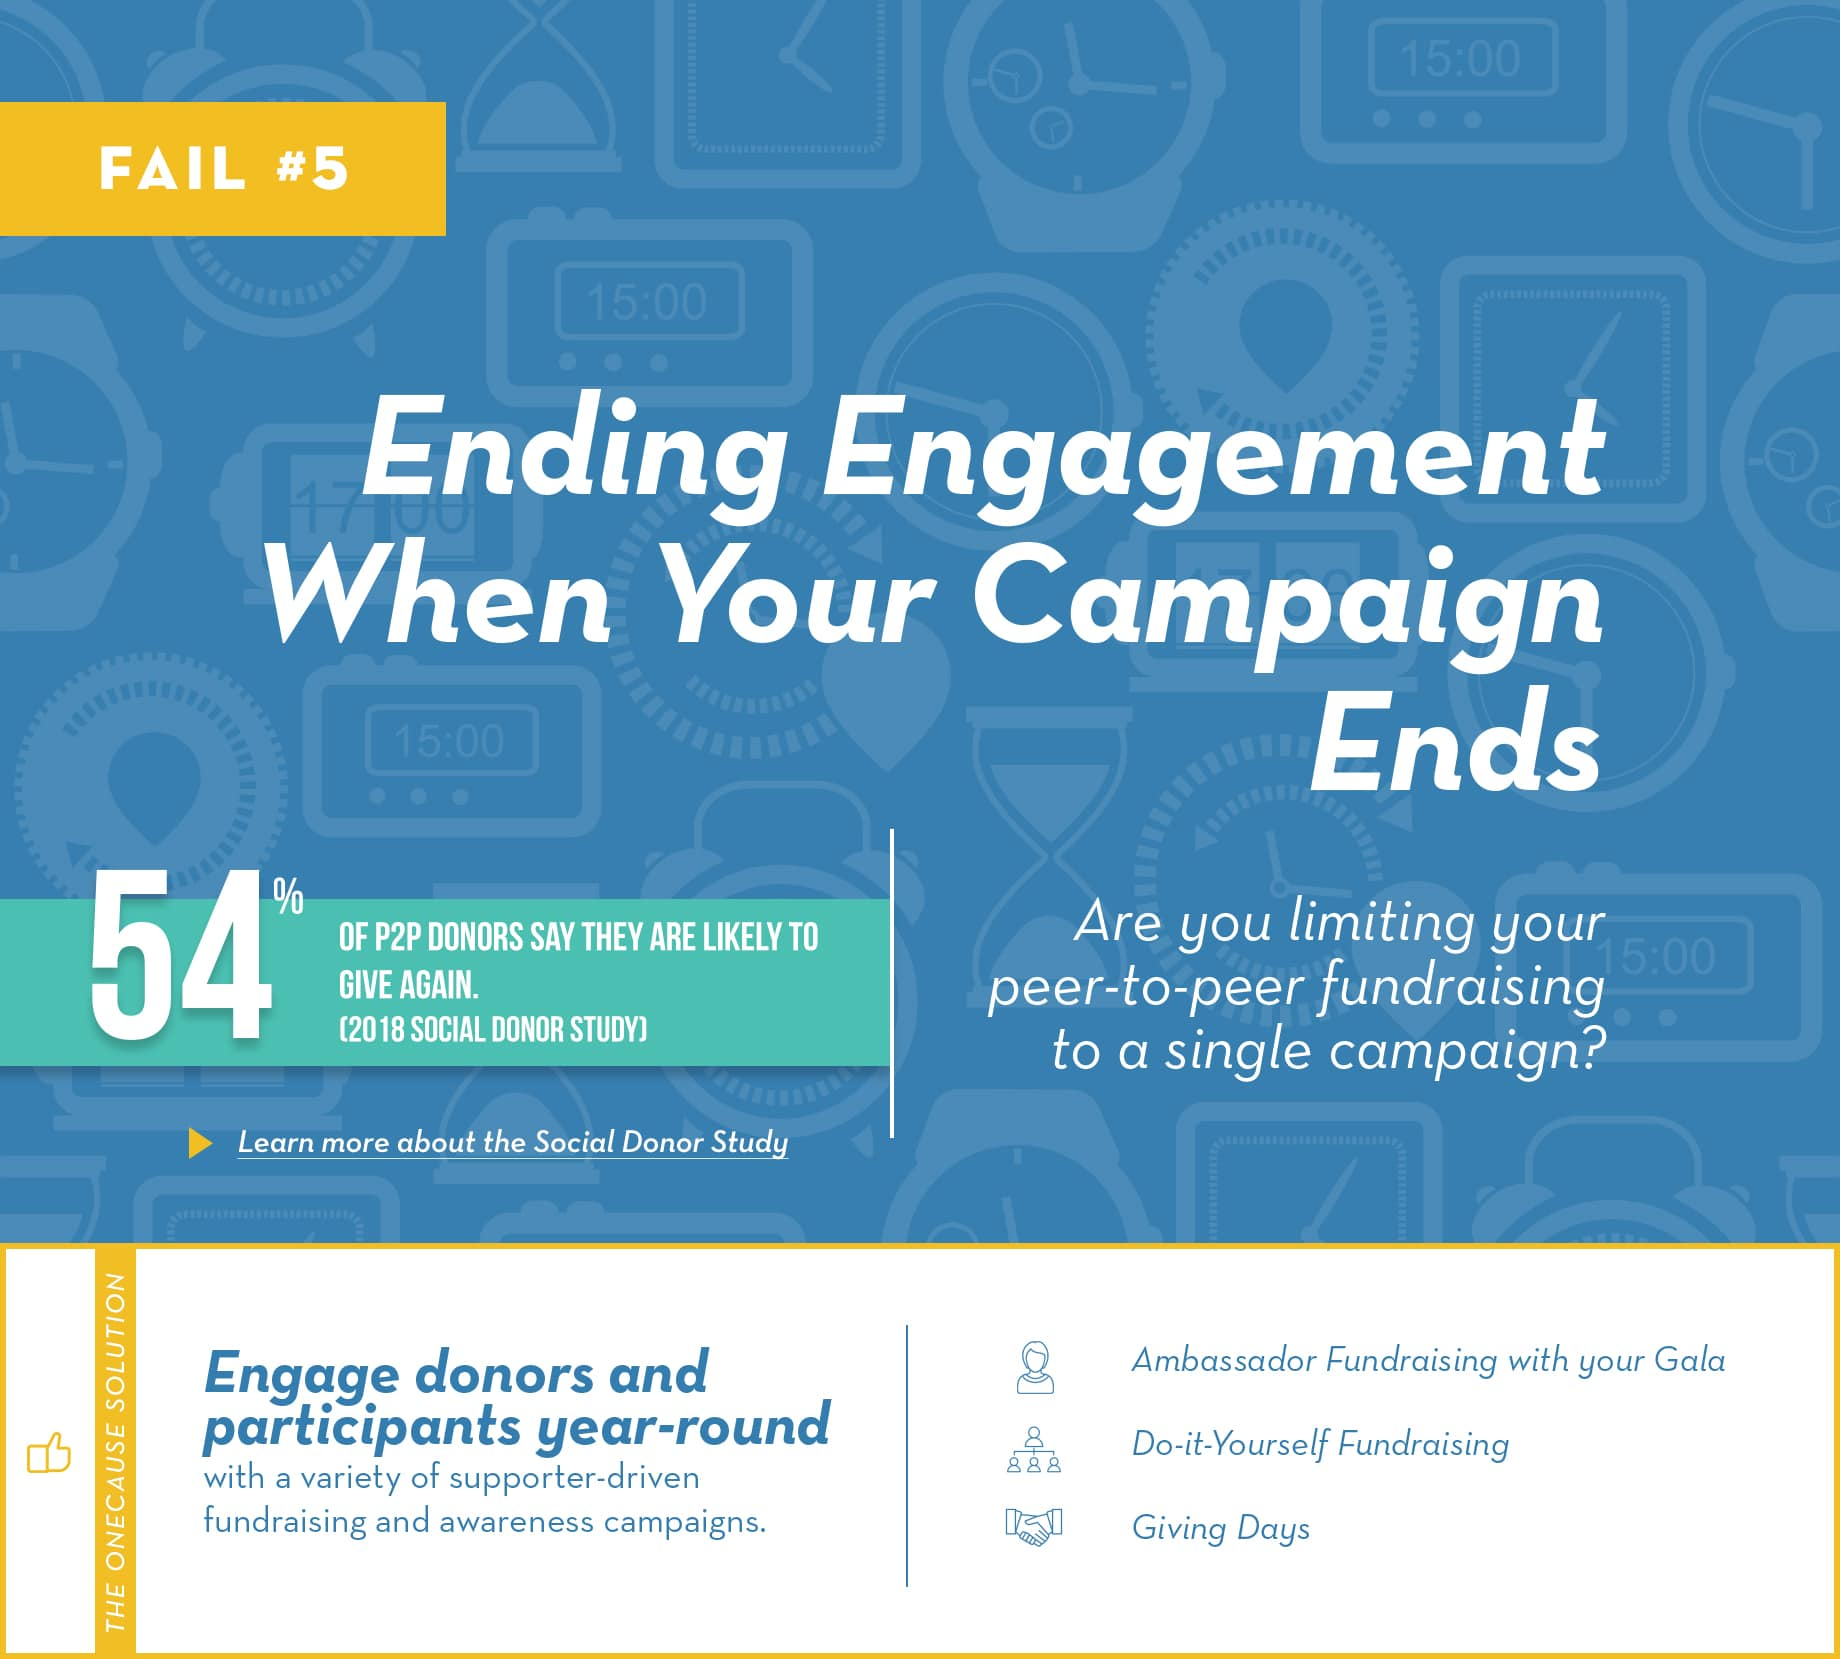 Fail #5: Ending engagement when your campaign ends. Are you limiting your peer-to-peer fundraising to a single campaign?